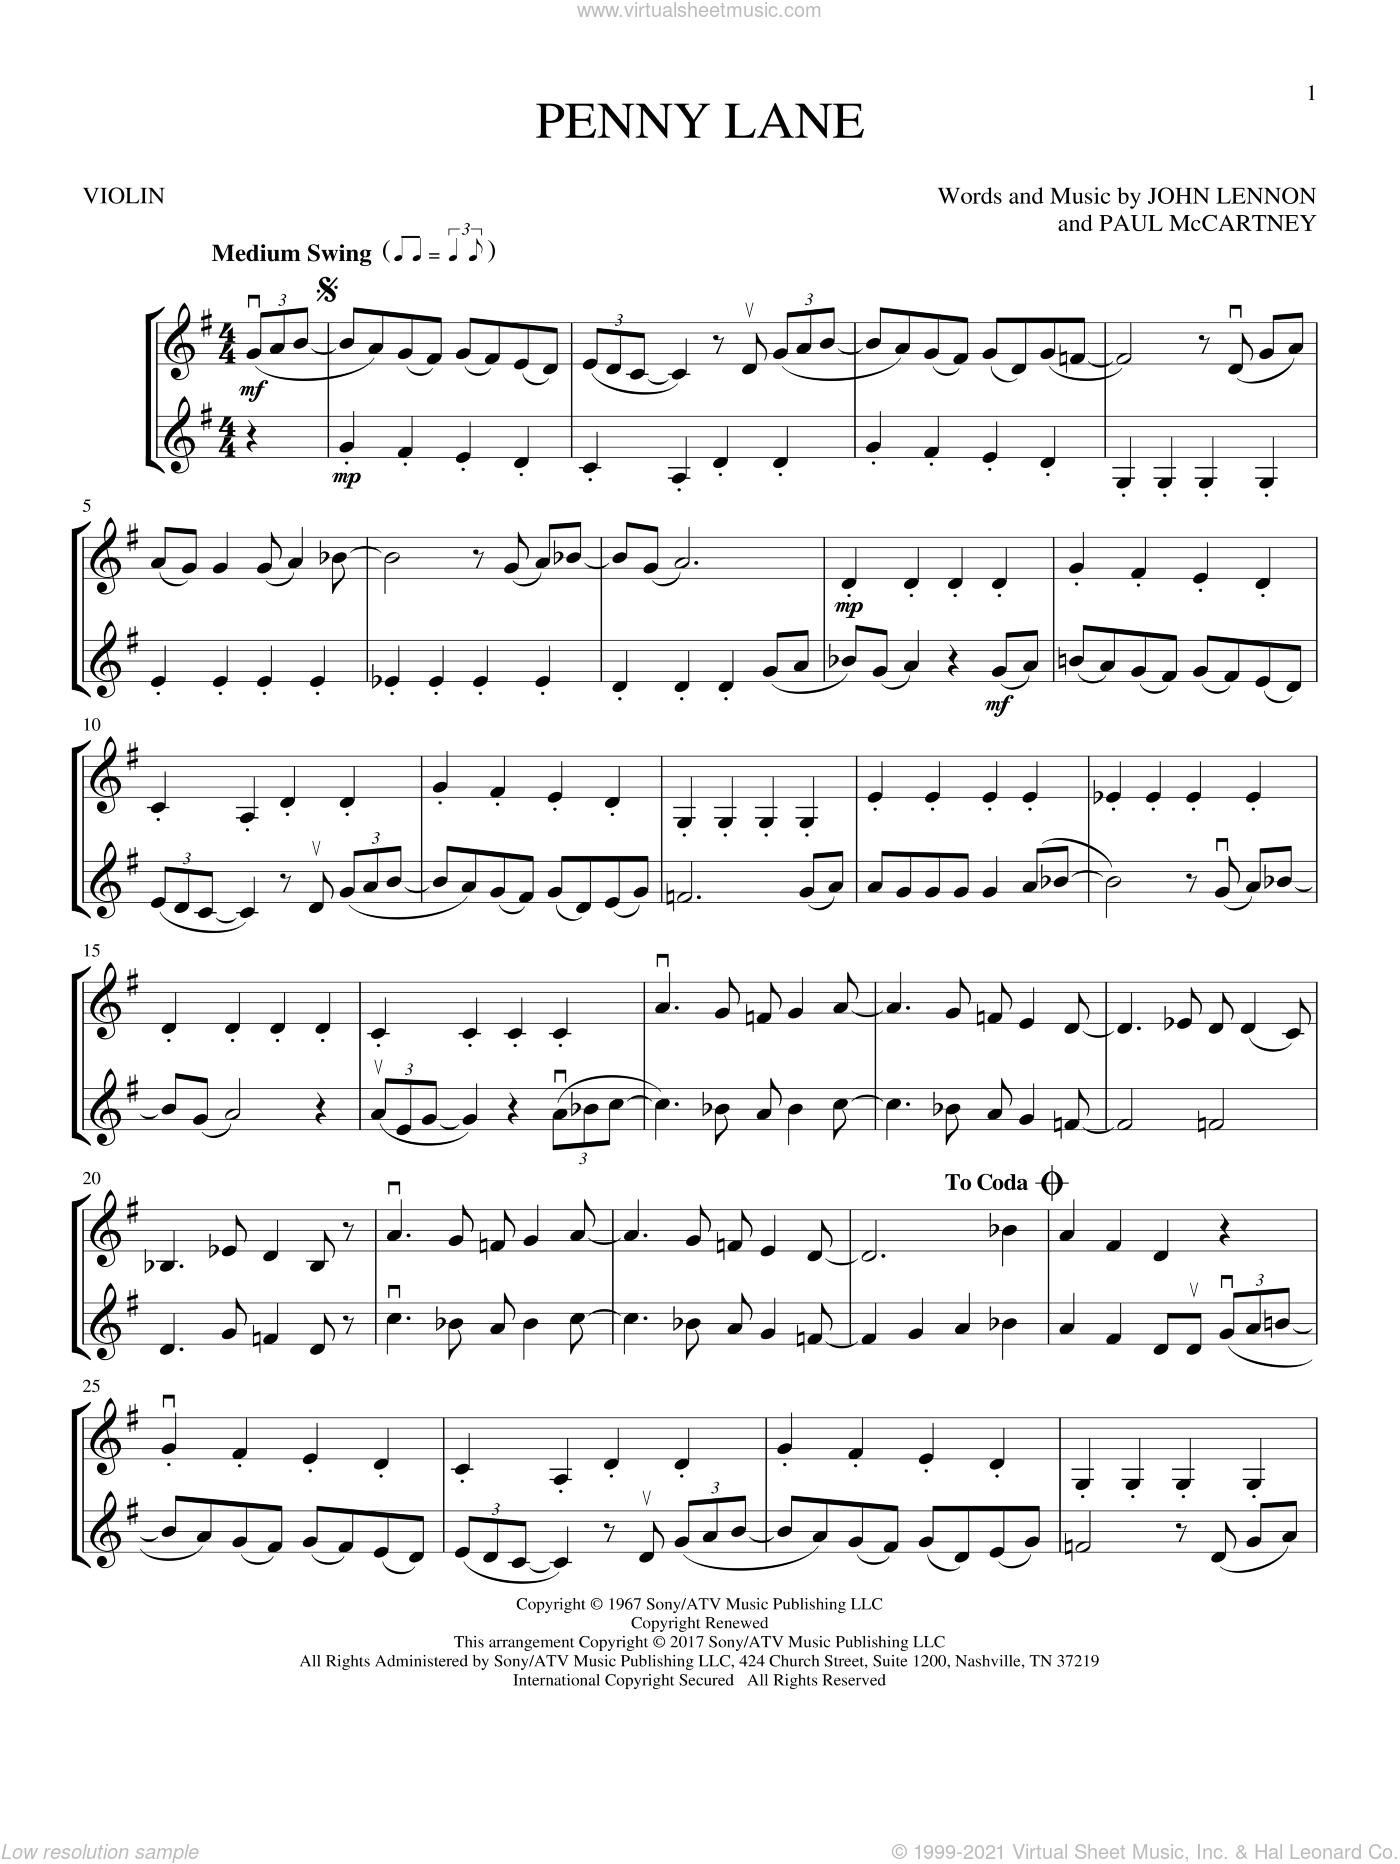 Penny Lane sheet music for two violins (duets, violin duets) by The Beatles, John Lennon and Paul McCartney, intermediate skill level